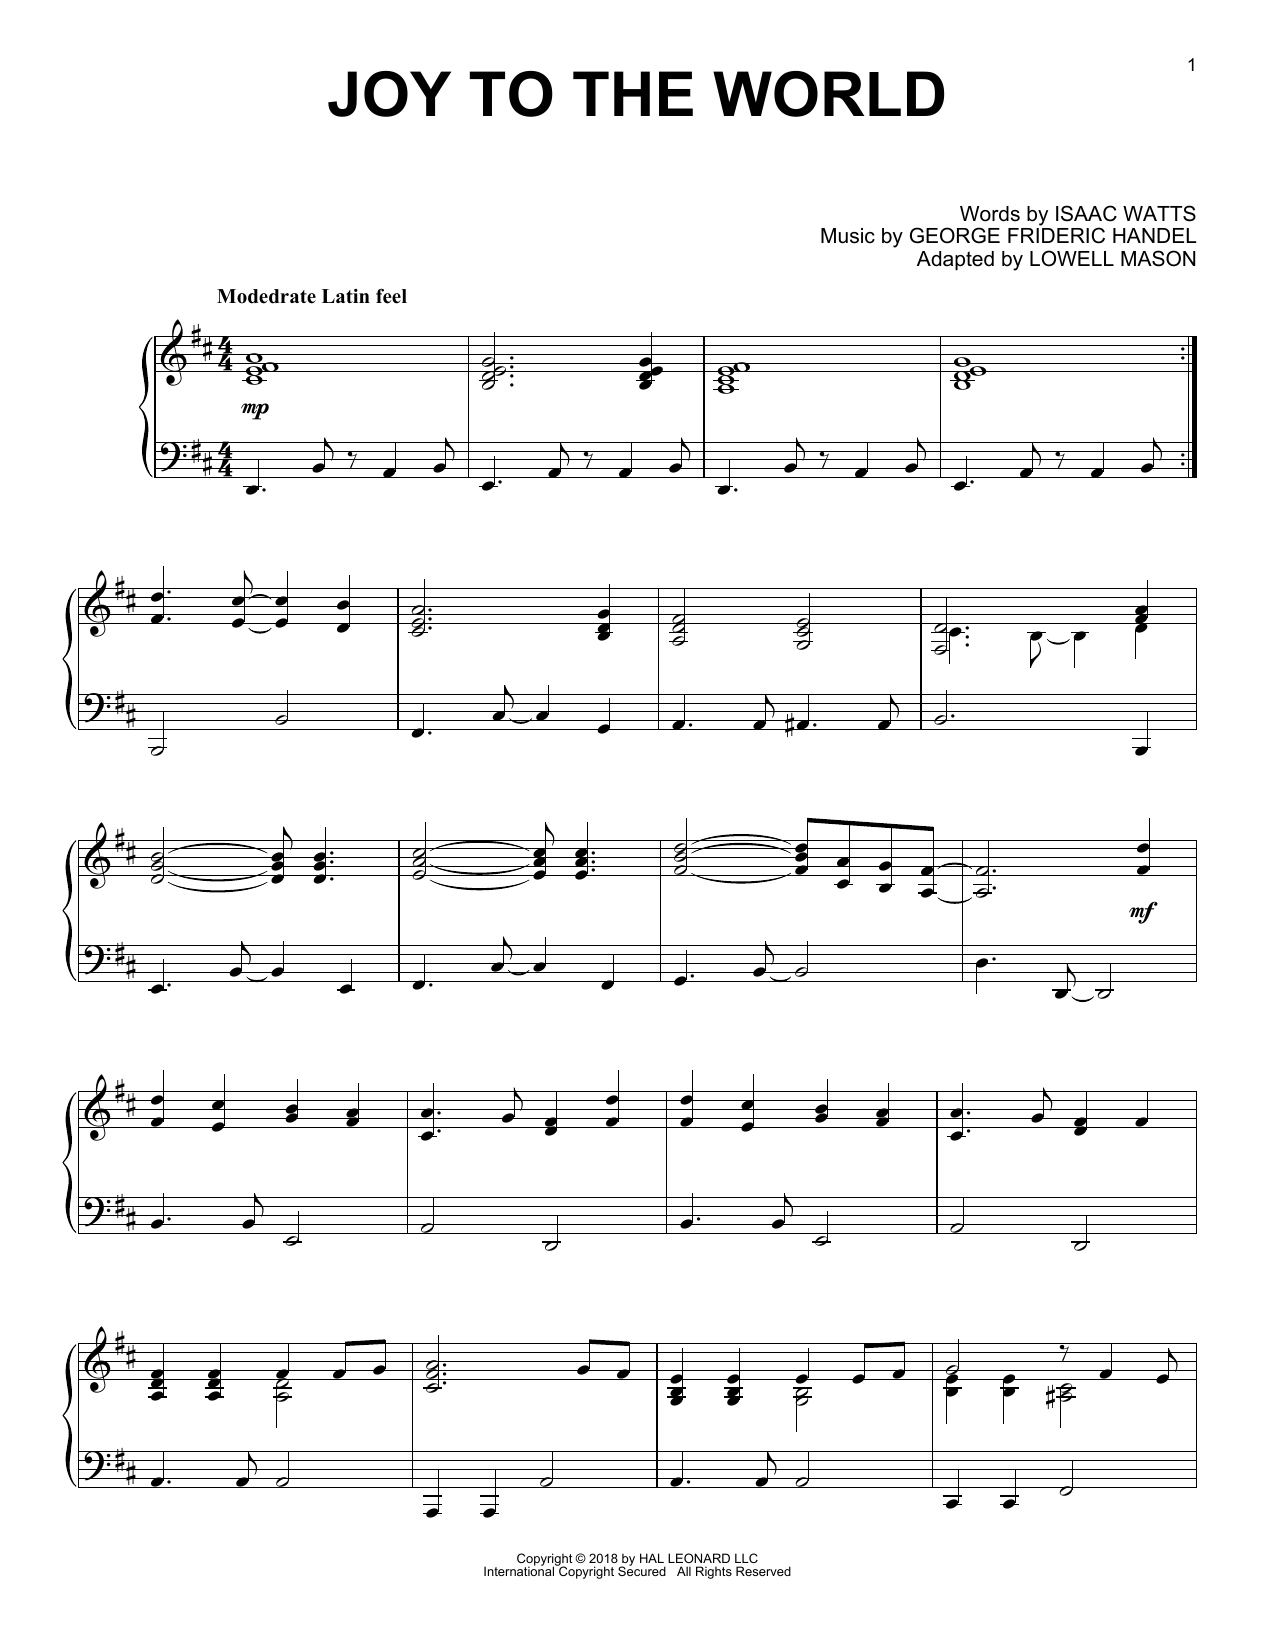 George Frideric Handel Joy To The World [Jazz version] sheet music notes and chords. Download Printable PDF.